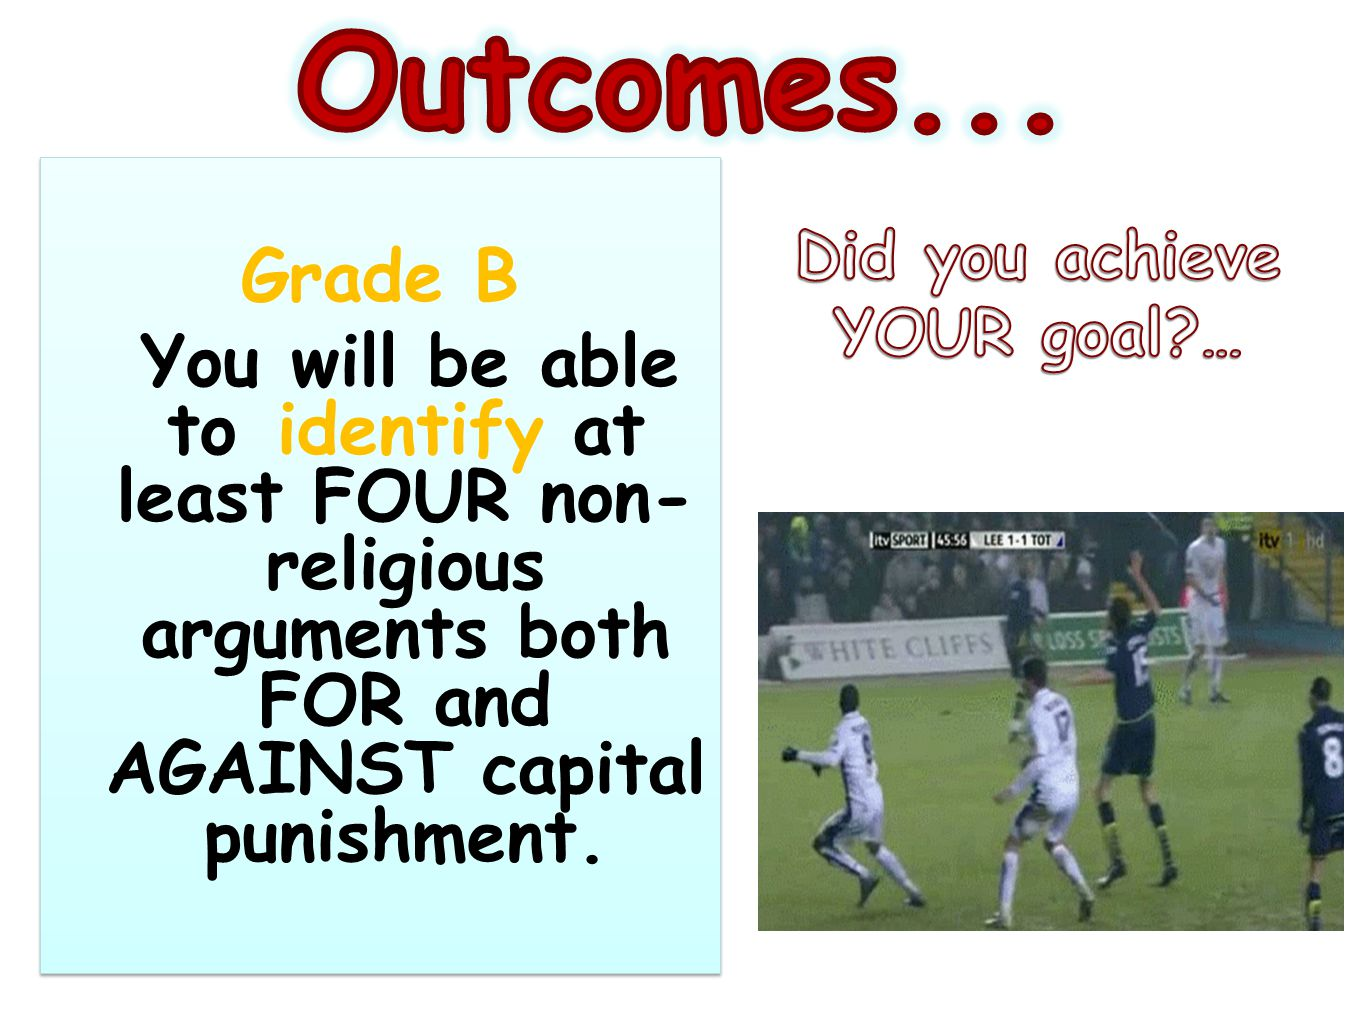 Grade B You will be able to identify at least FOUR non- religious arguments both FOR and AGAINST capital punishment.